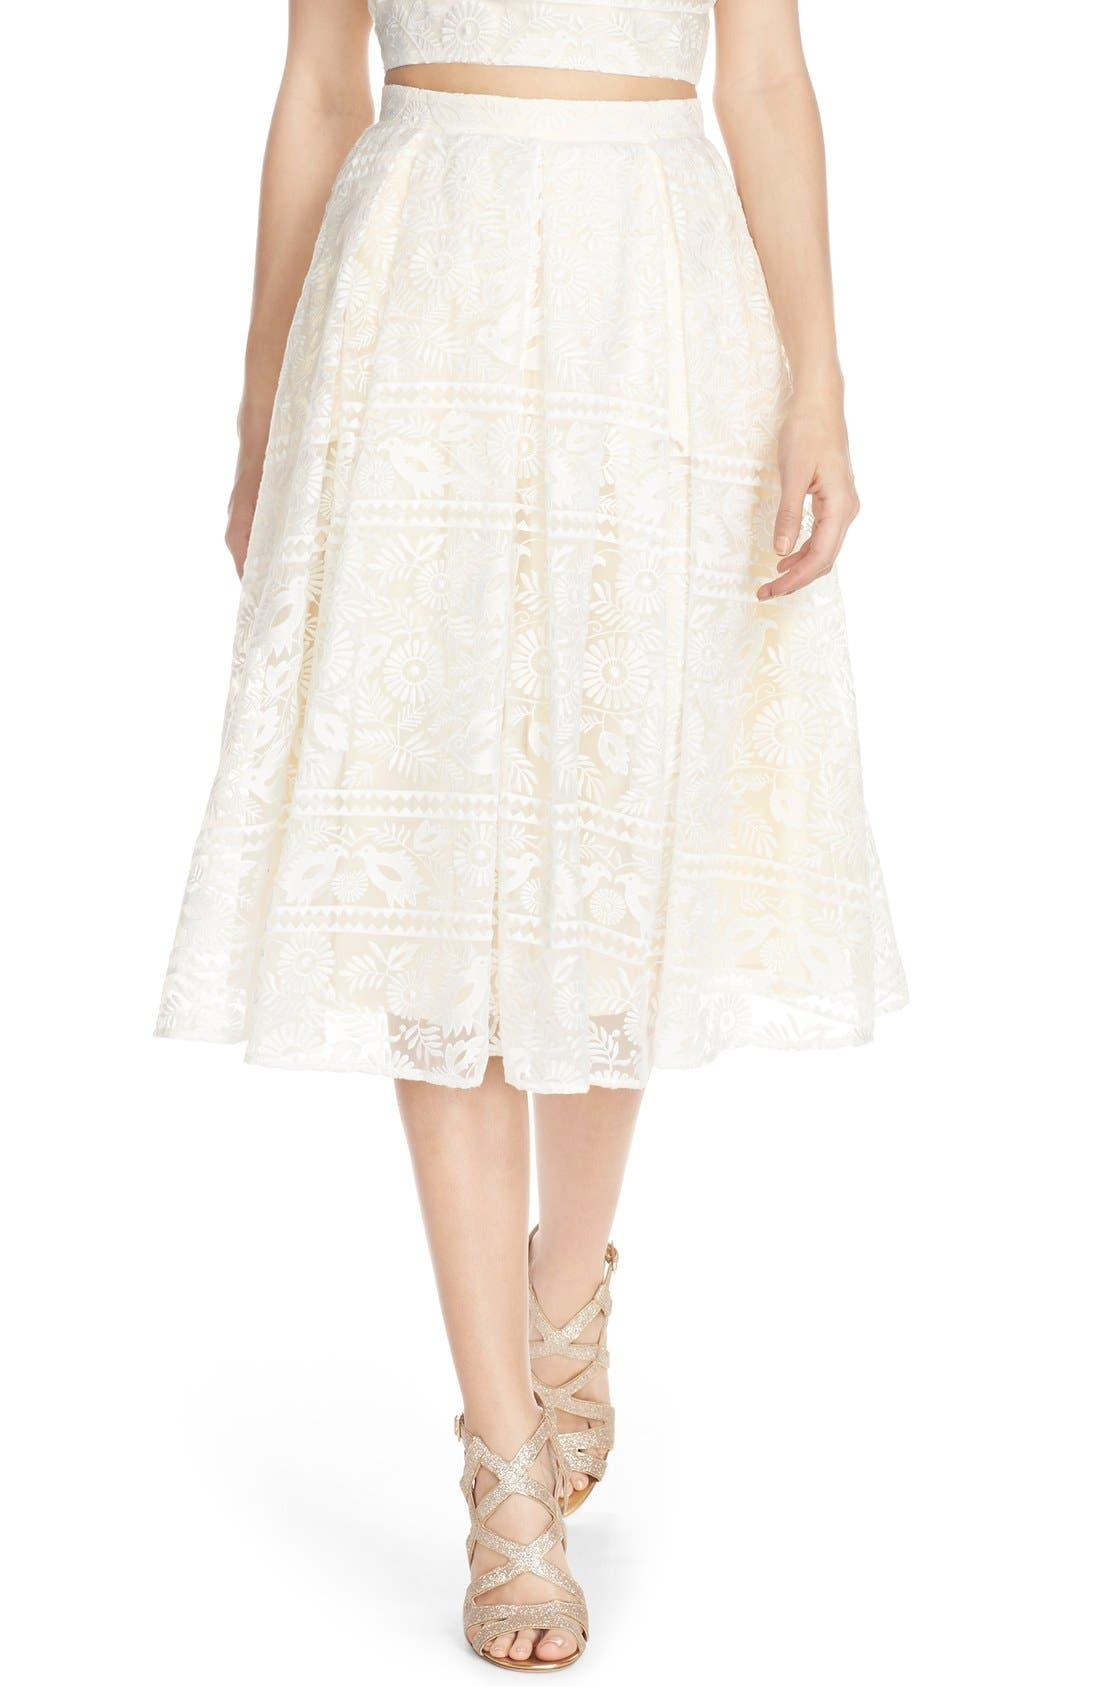 Main Image - Paper Crown by Lauren Conrad 'Marietta' Lace Organza Full Skirt